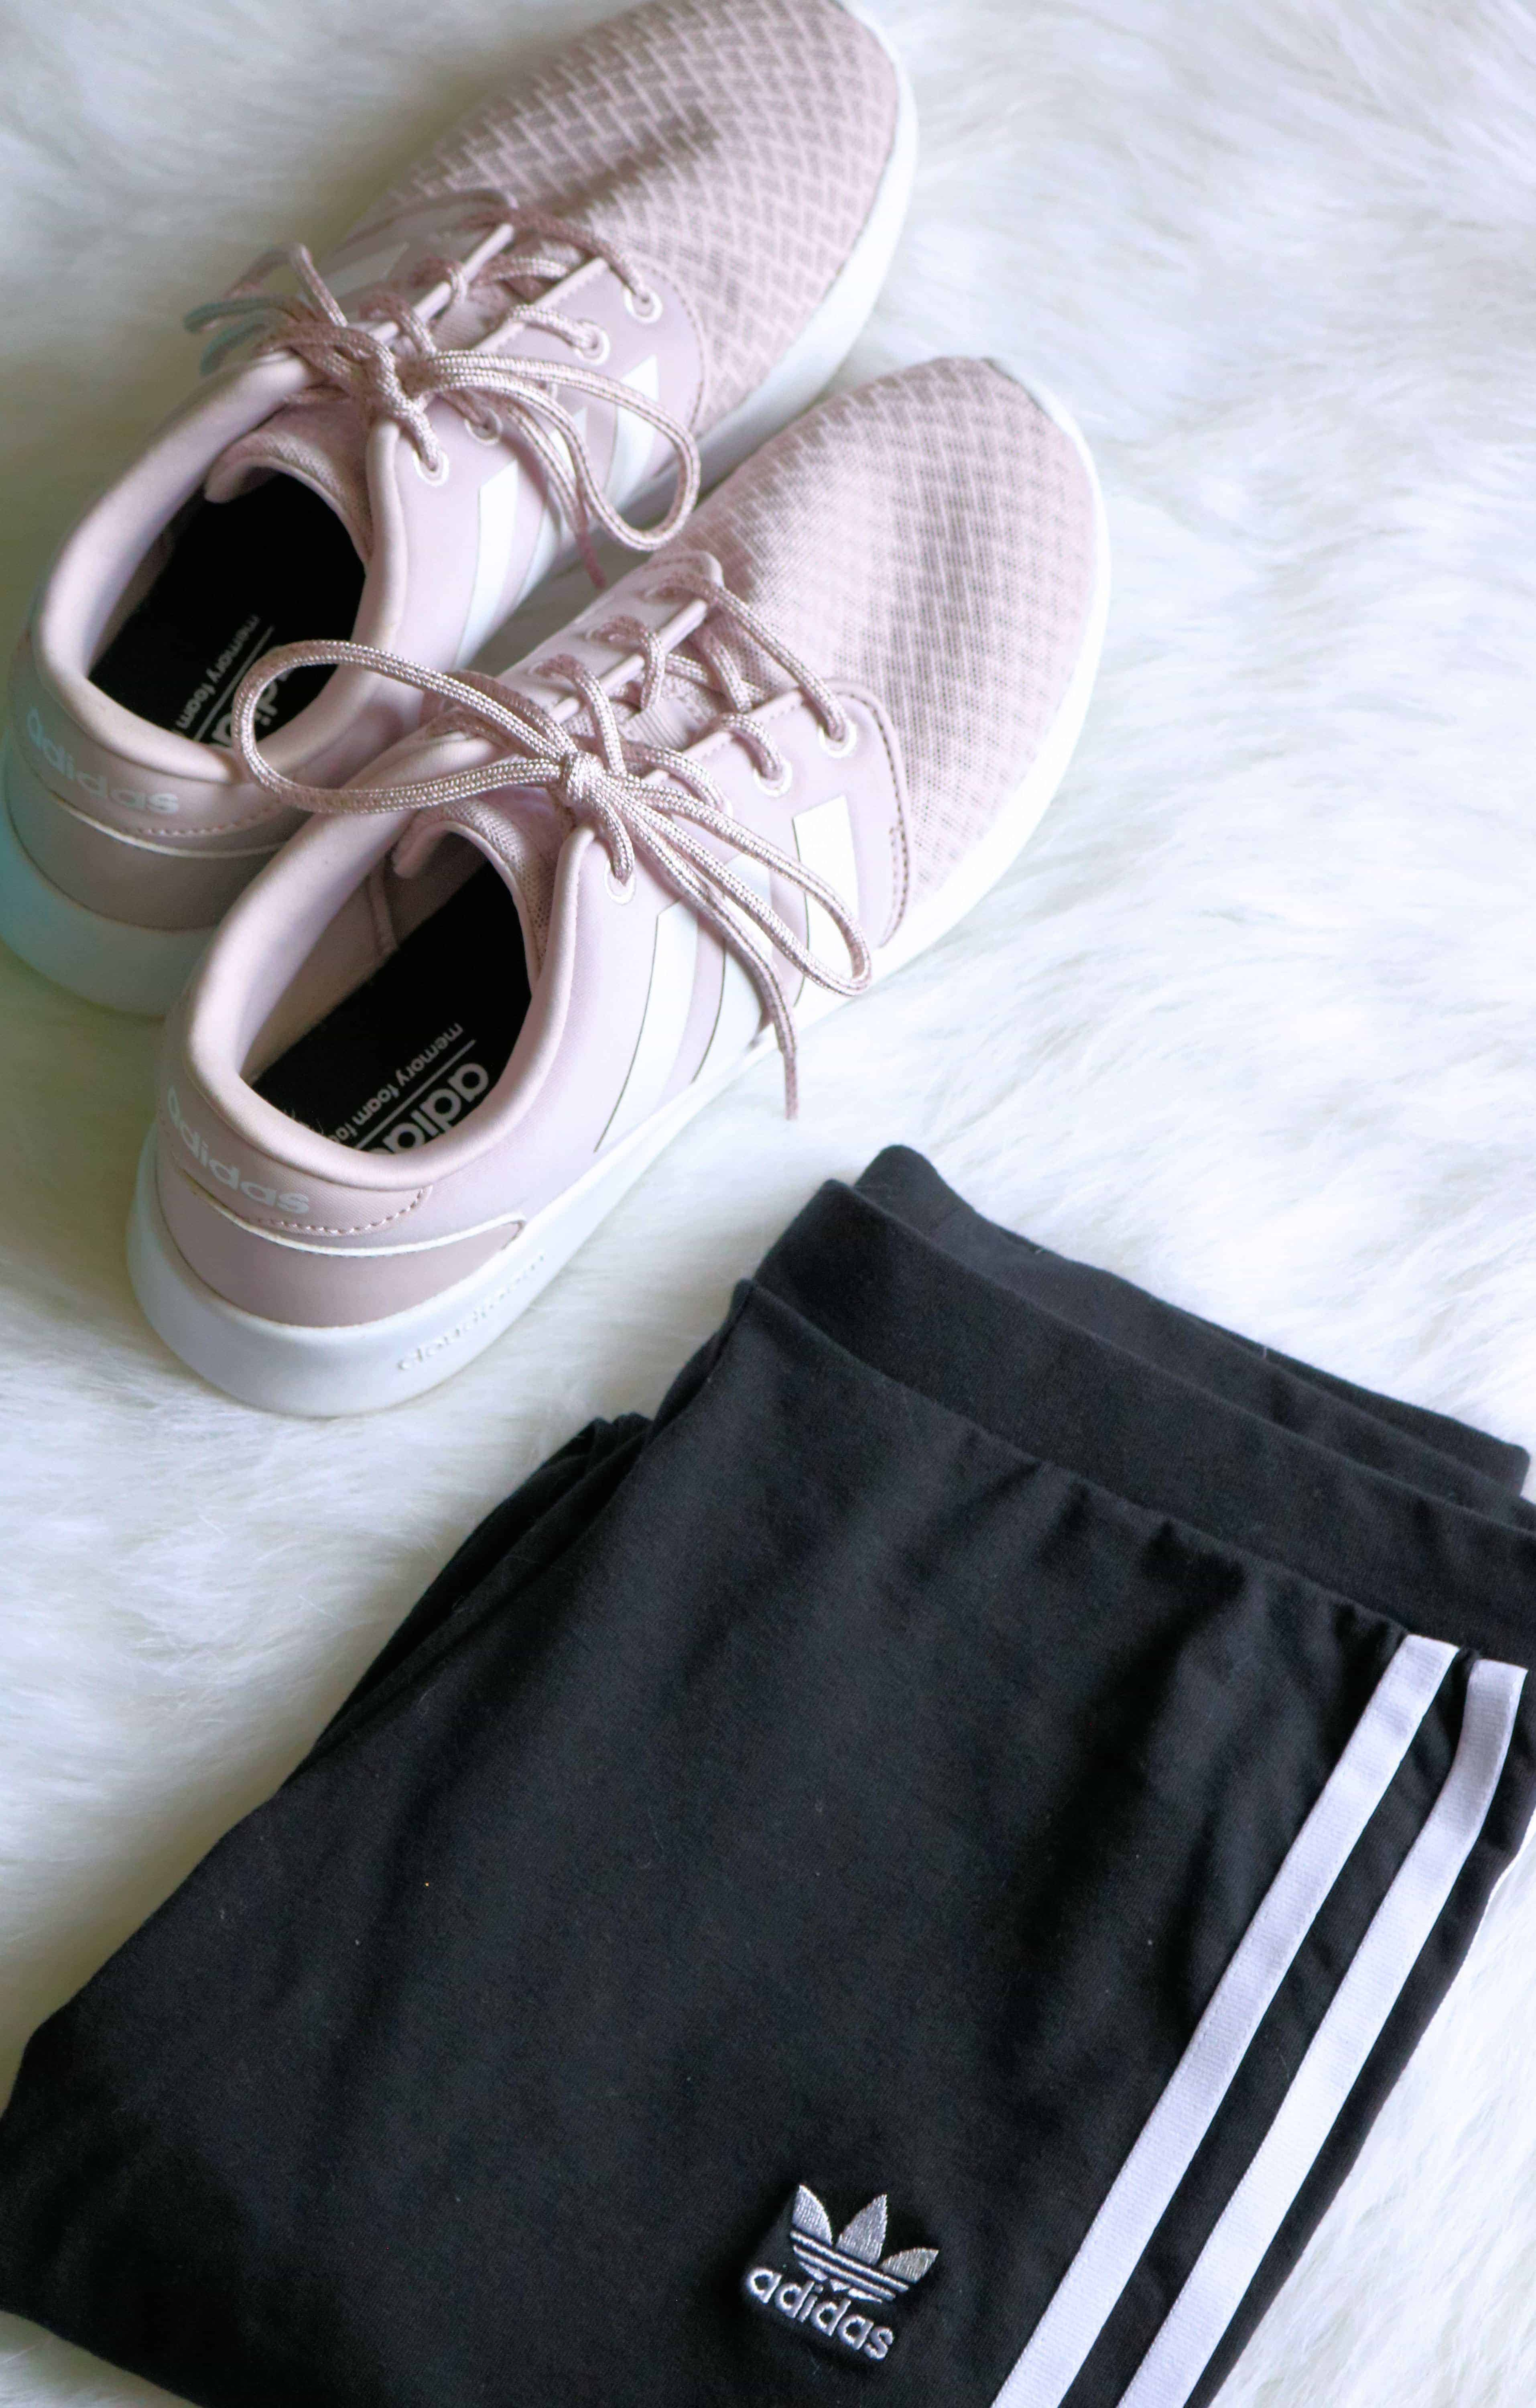 Check out my holiday gift guide of the 10 Best Fitness Gifts For Her all under $50! Every woman will love these fitness gifts and cute workout essentials! #christmasgifts #giftguide #fitnessgifts #giftsforher